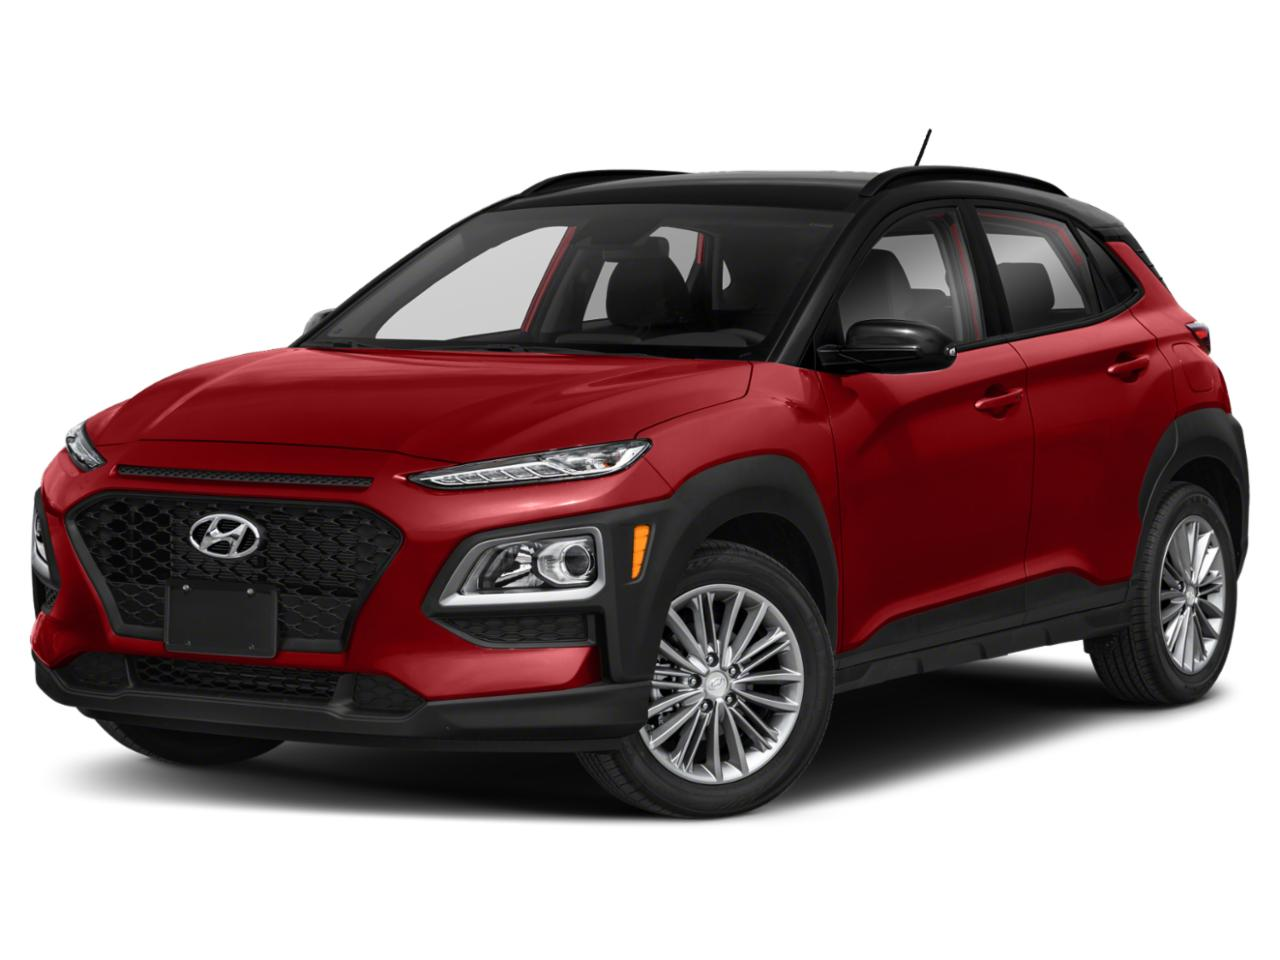 2021 Hyundai Kona Vehicle Photo in Peoria, IL 61615